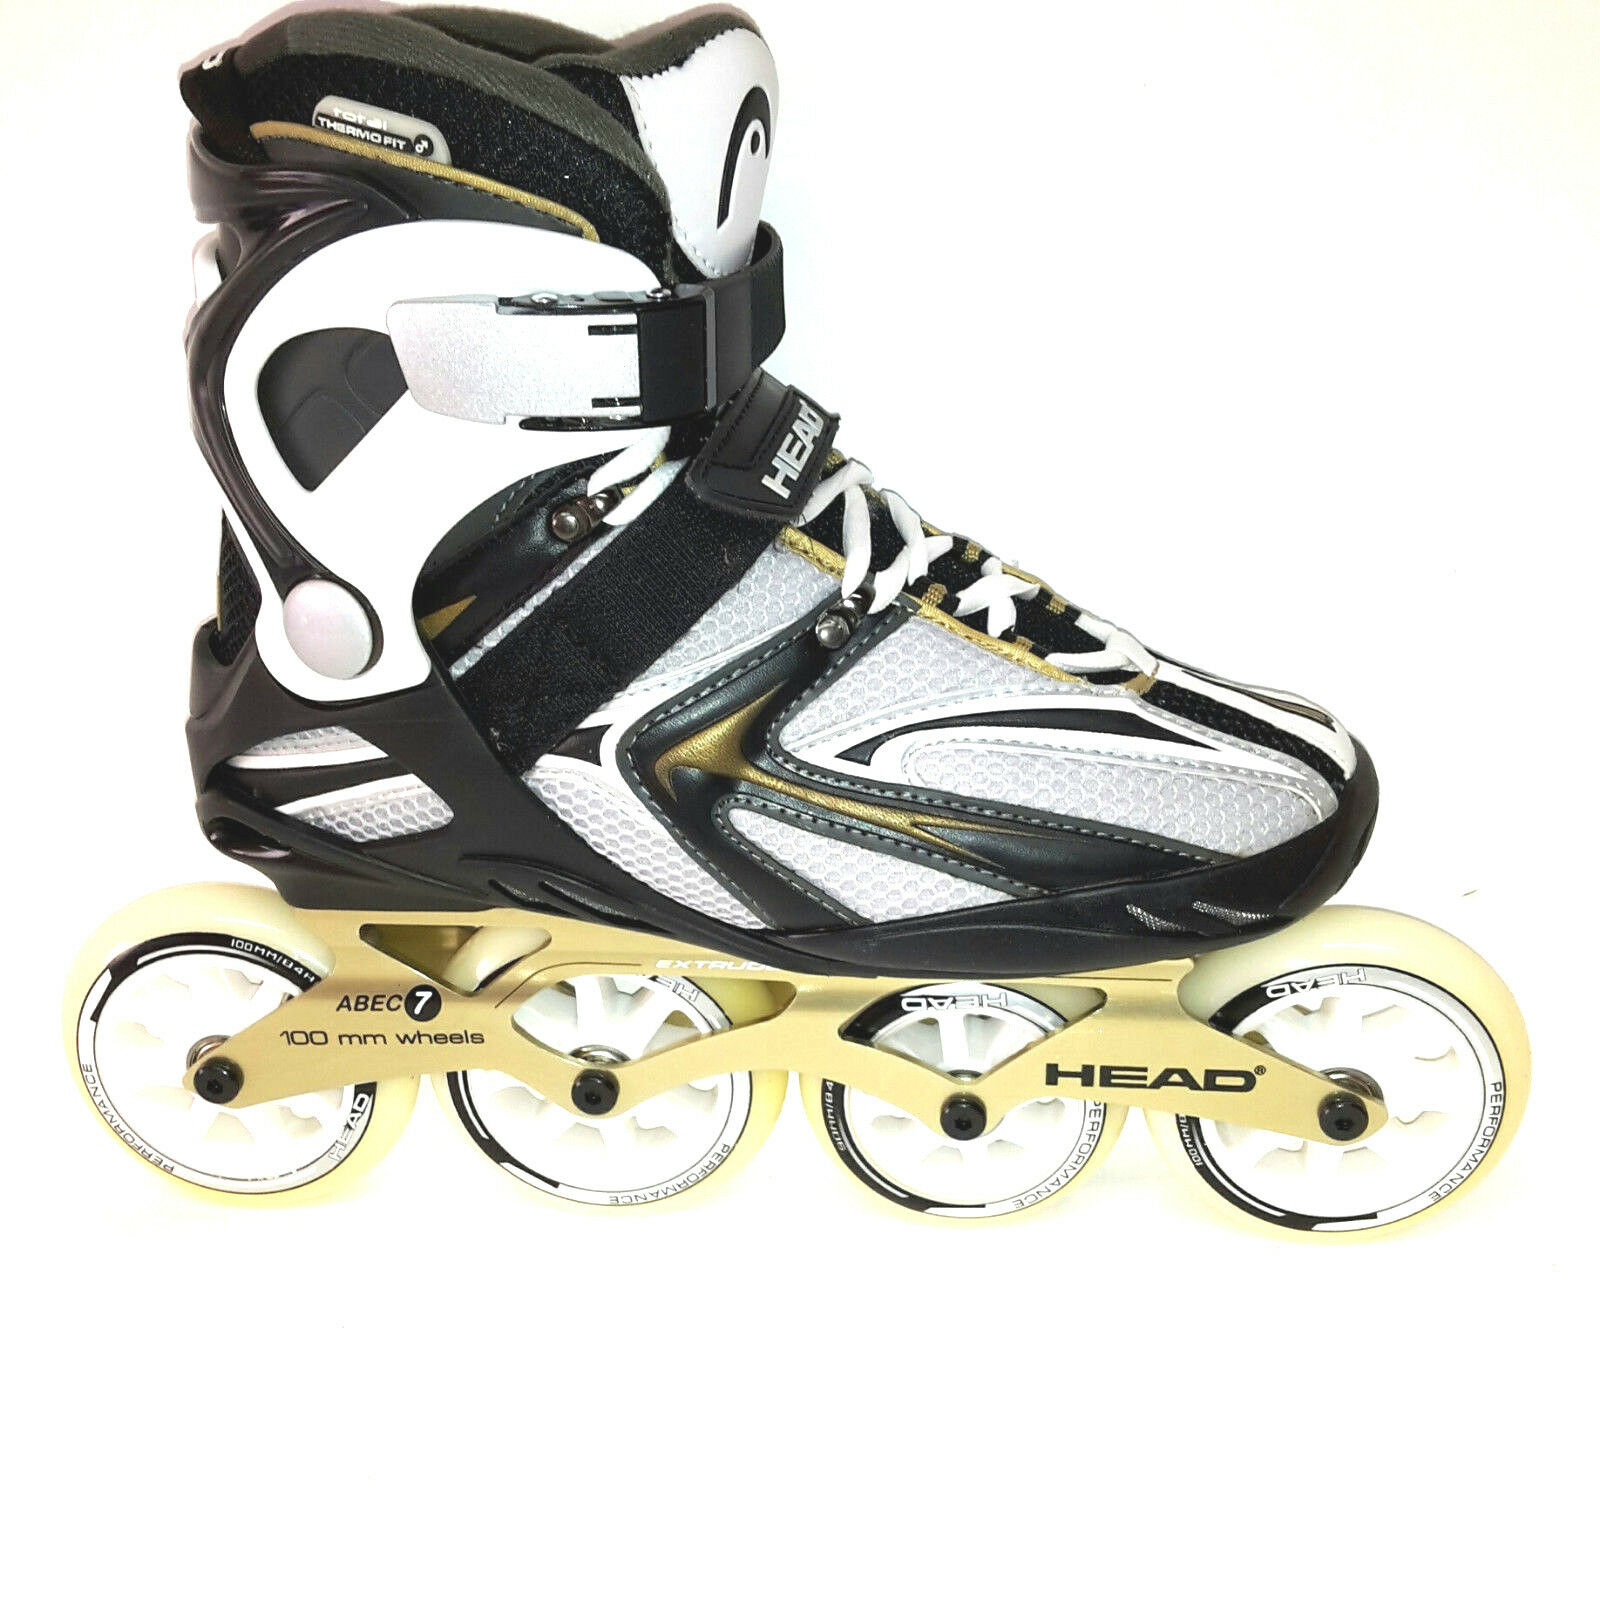 HEAD Inlineskates Training 100 Fitness Skate Gr. 41 41 41 Speedskate 100mm Abec 7  | Authentische Garantie